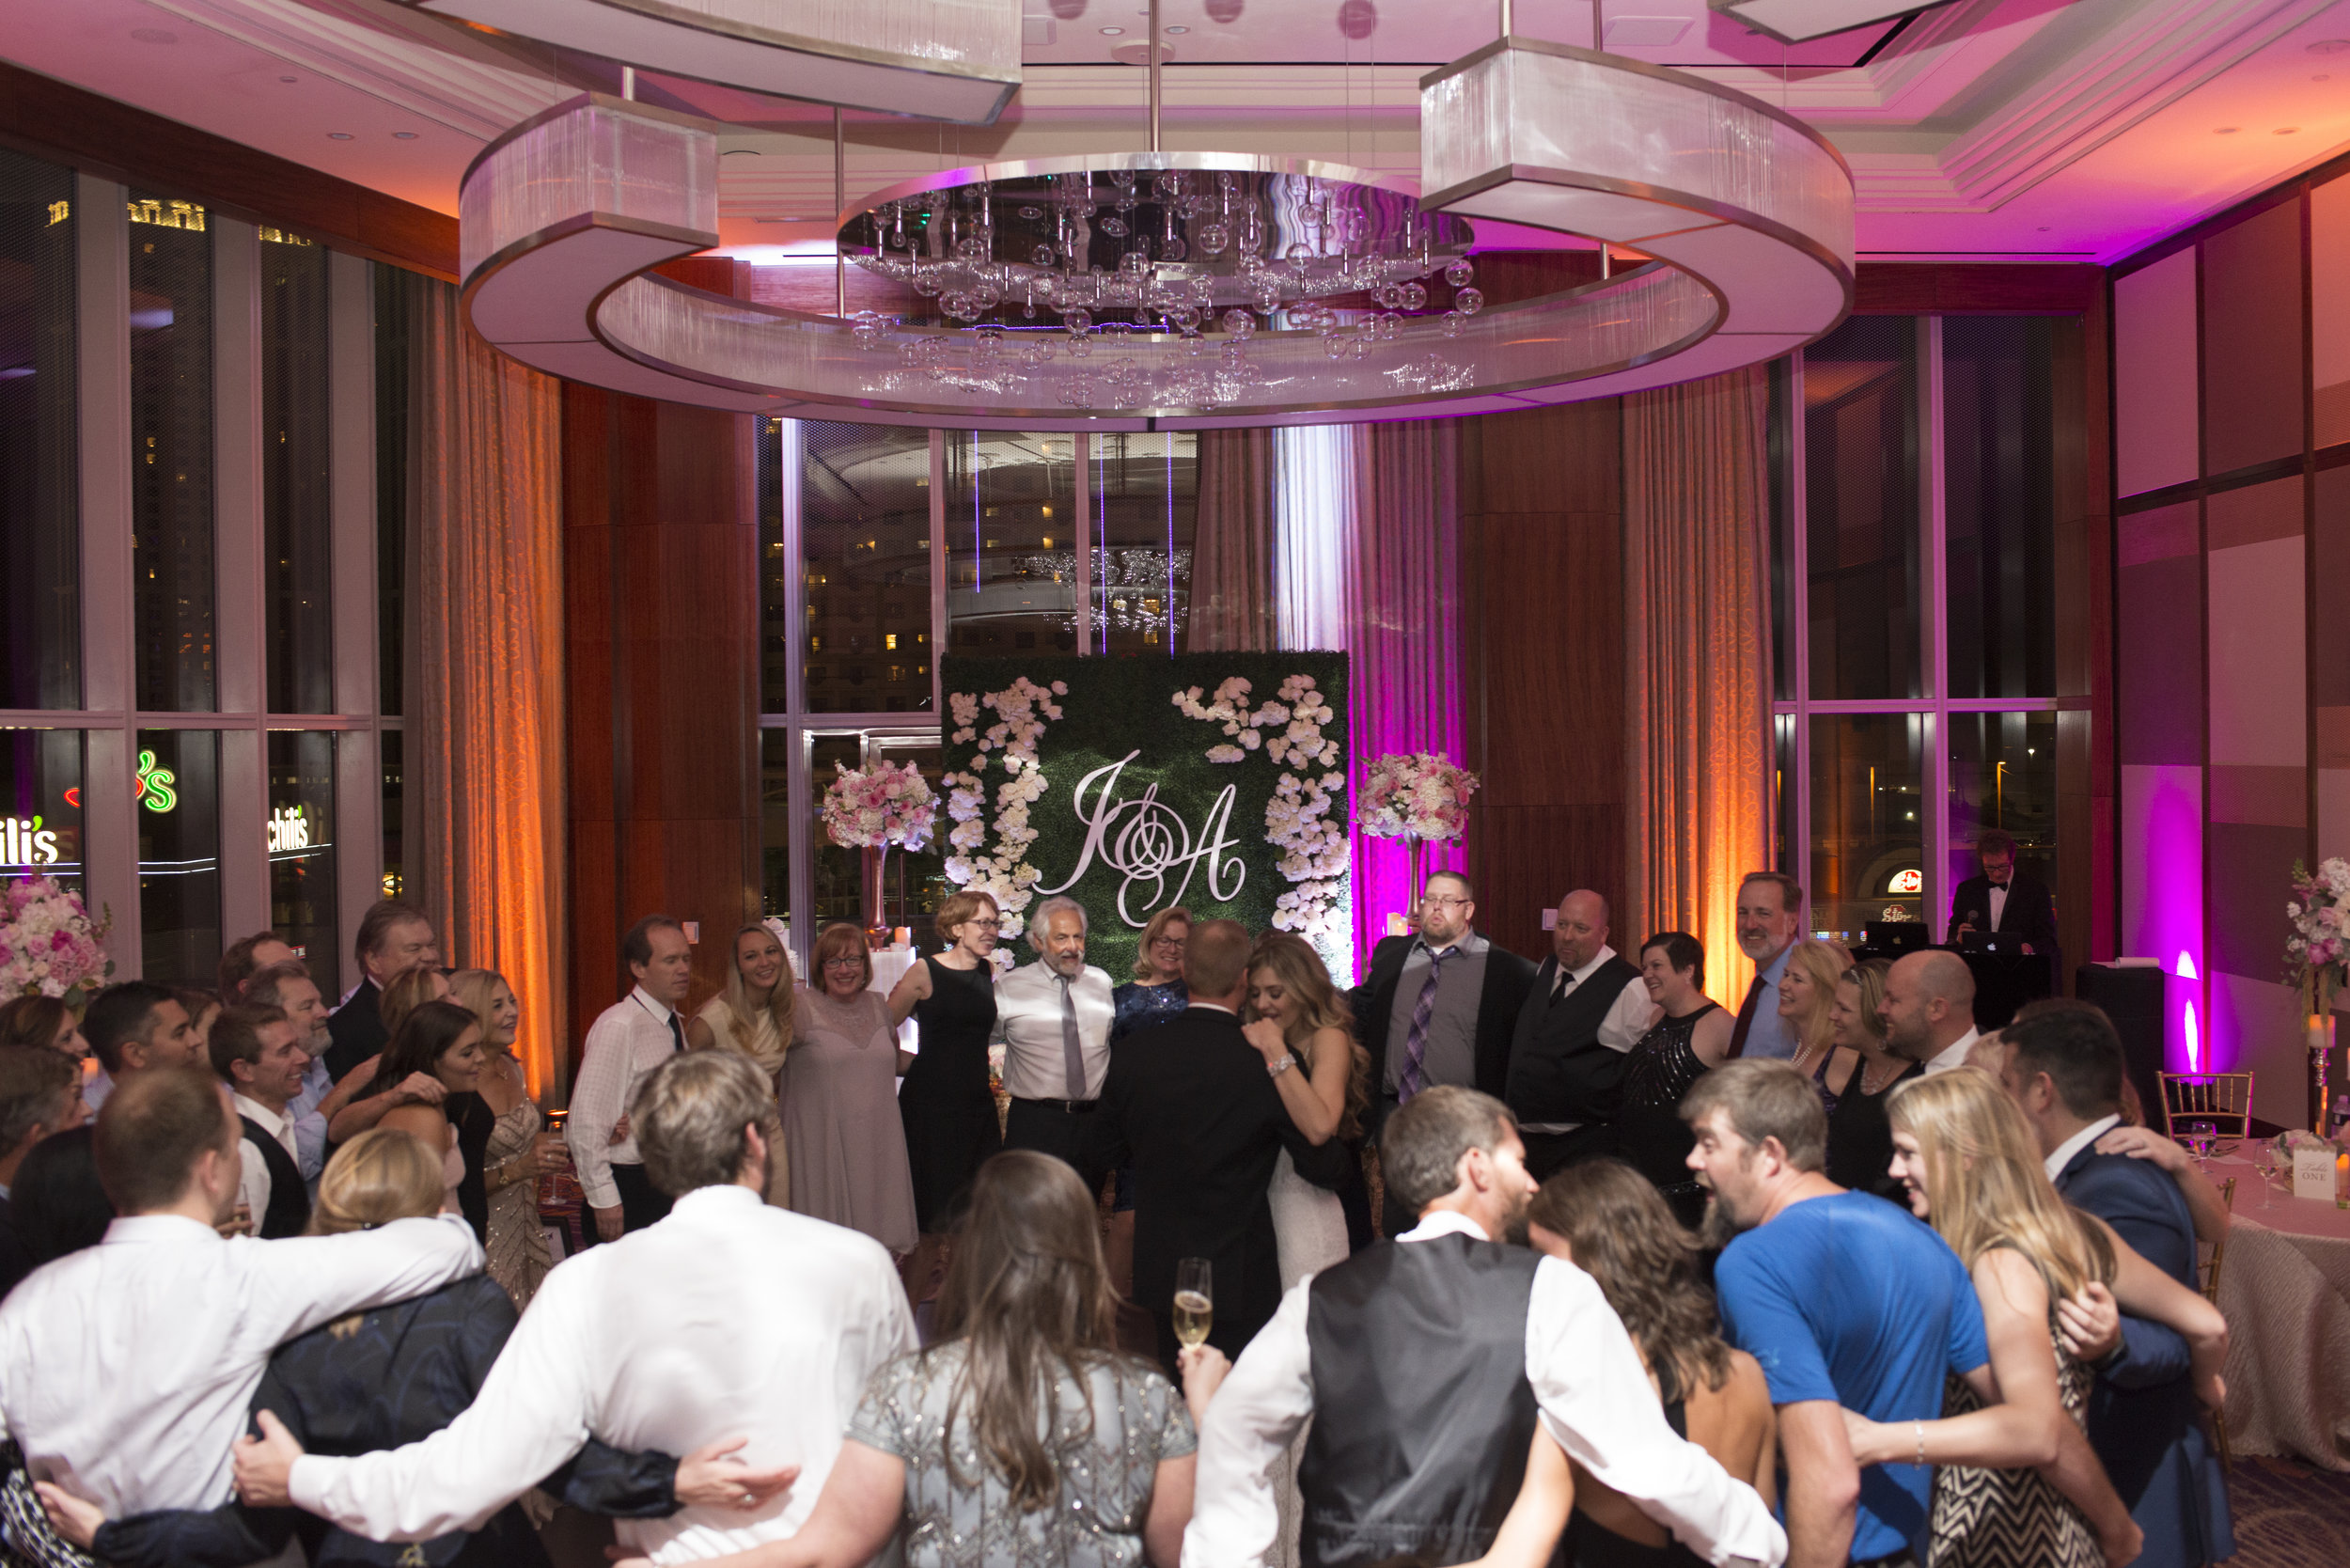 Last Dance to remix of Don't Stop Believin' at Mandarin Oriental. Las V  egas   Wedding Planner Andrea Eppolito  .   Image by AltF.